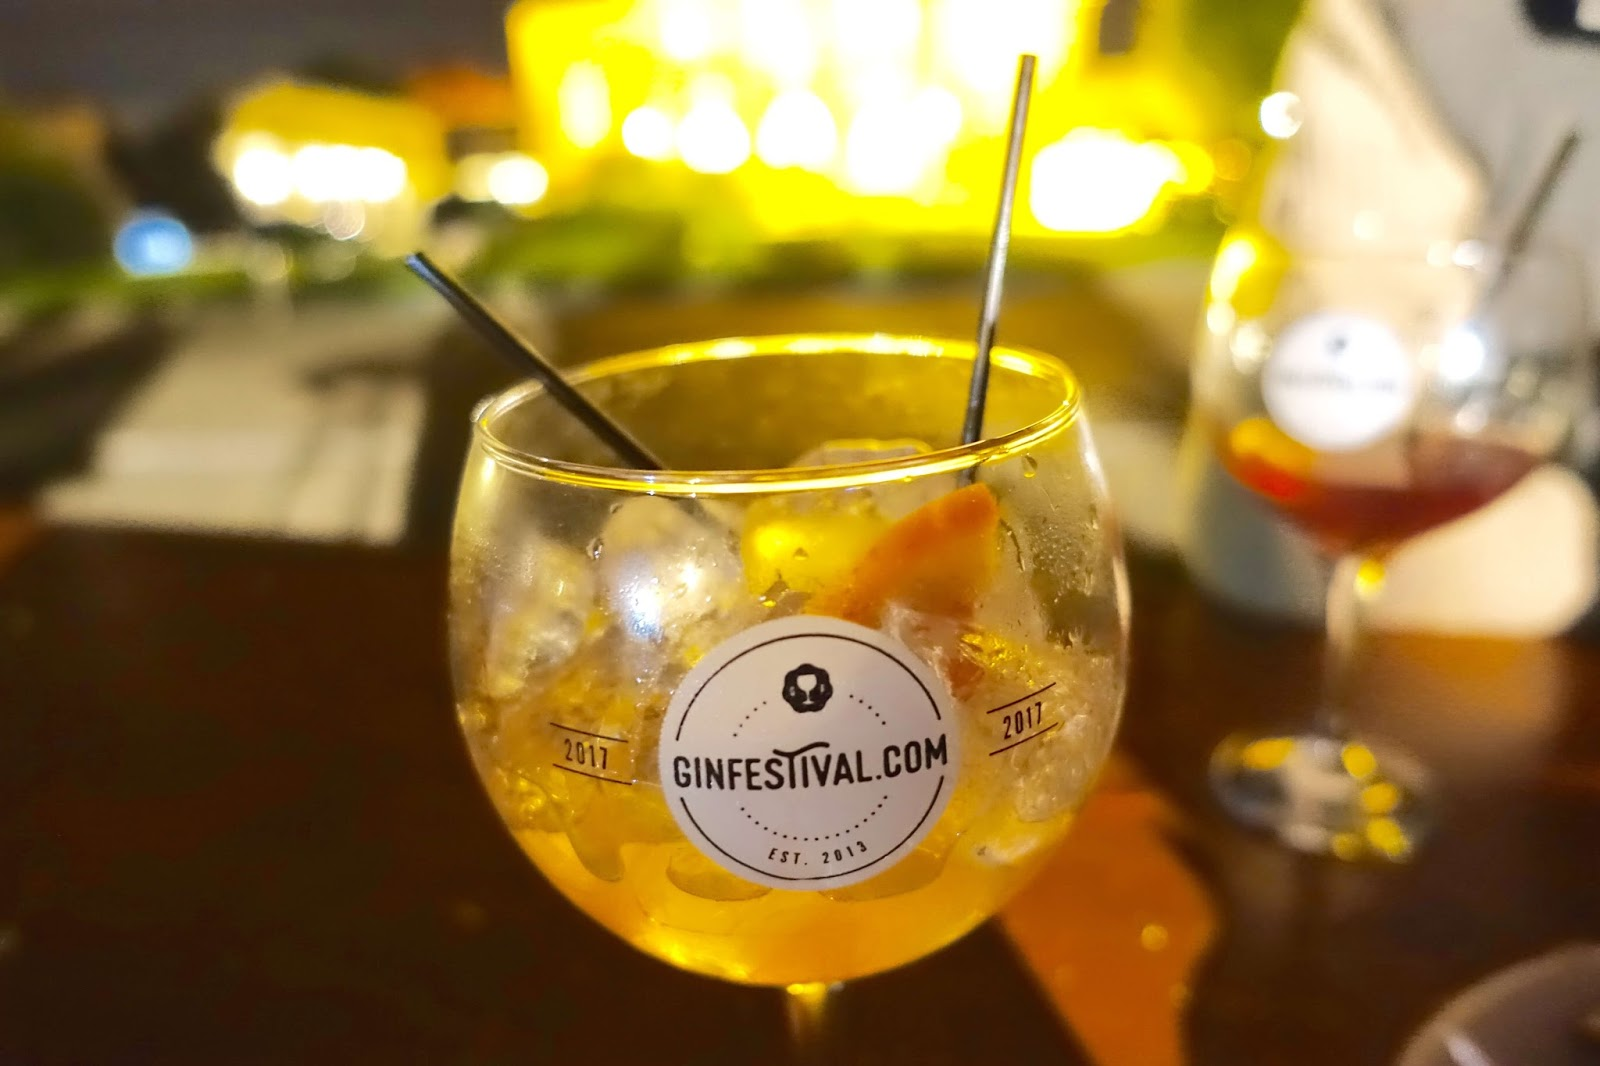 Gin festival 2017 balloon glass